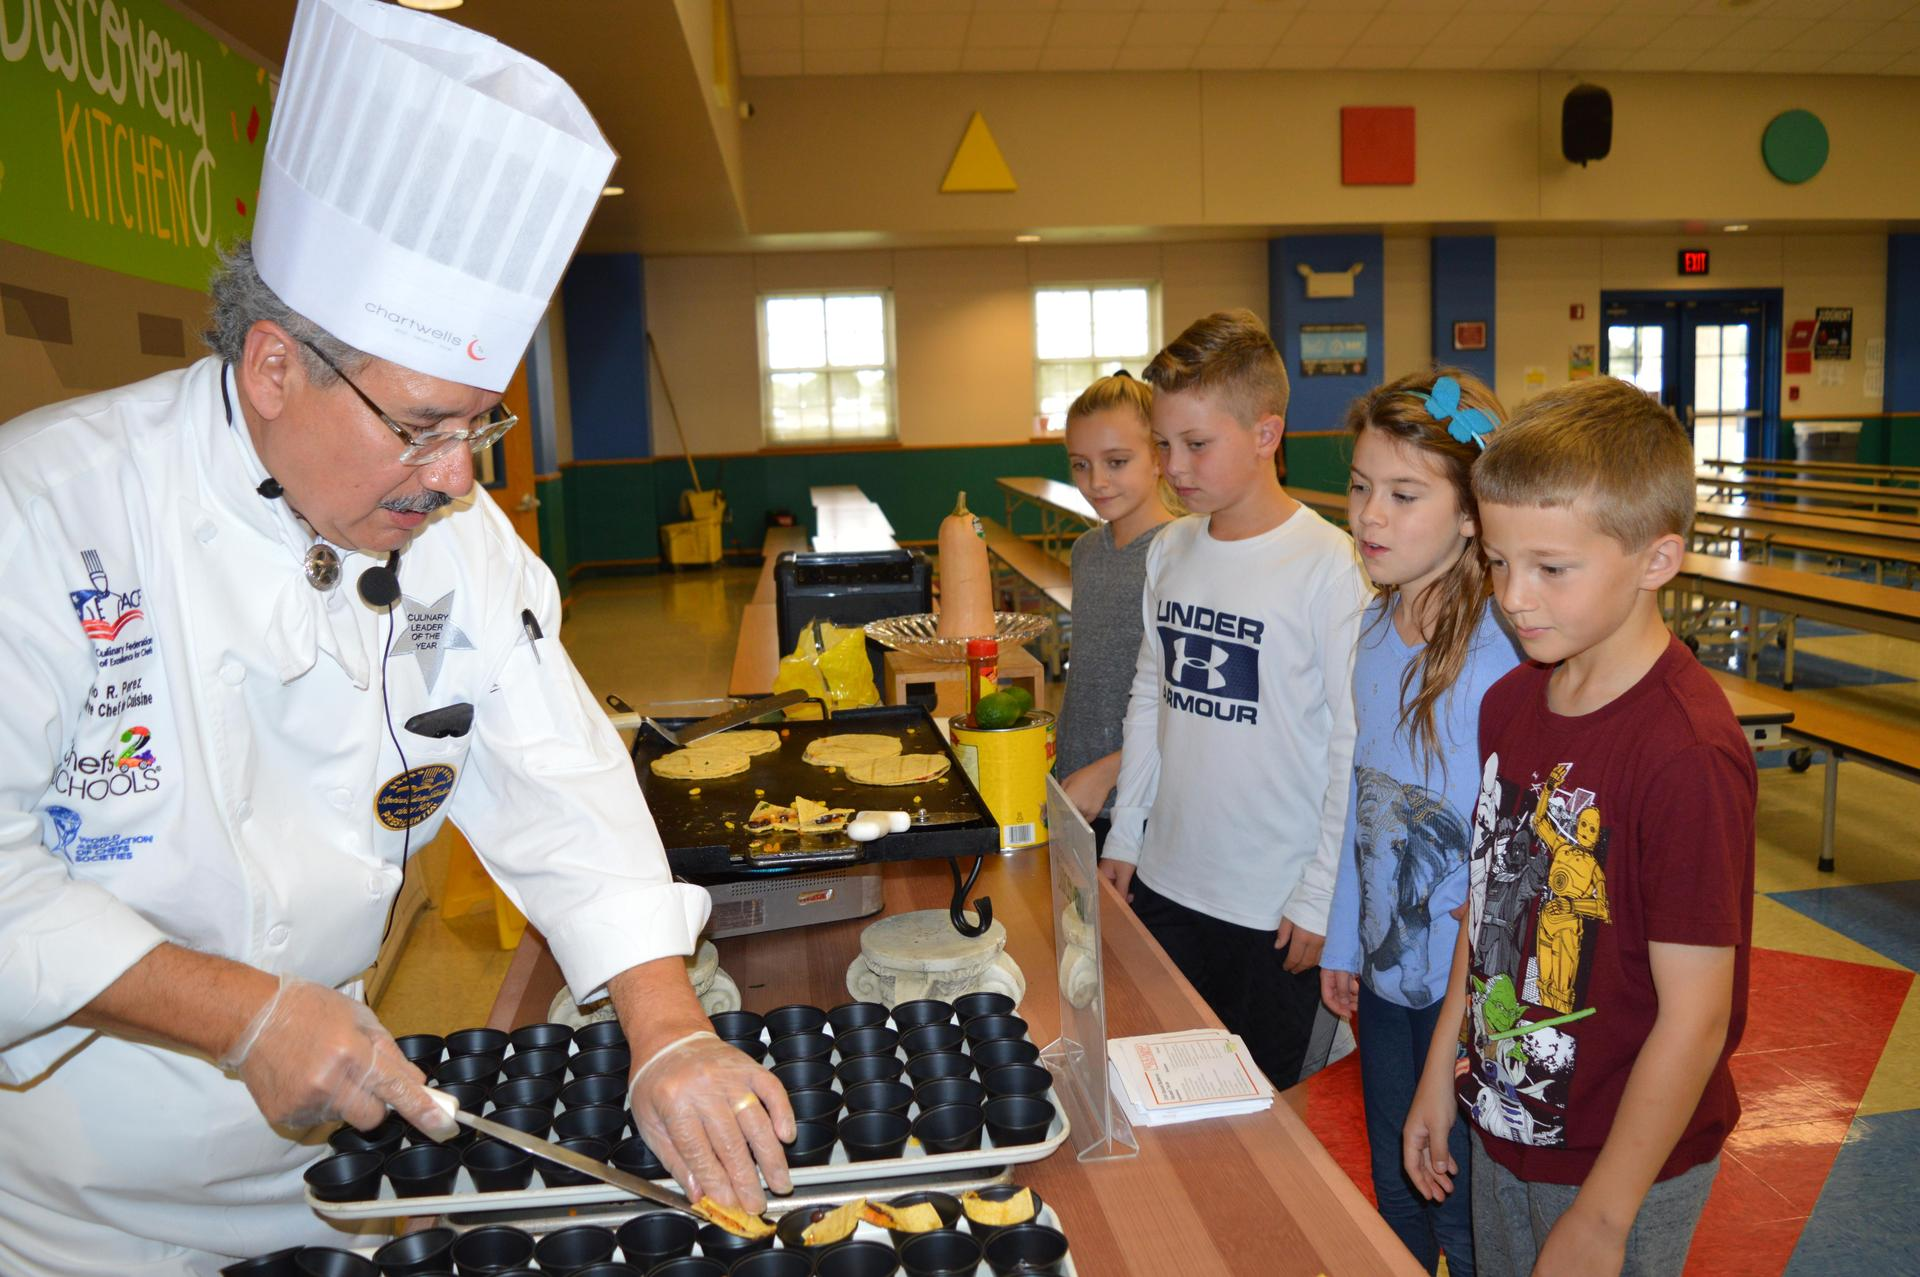 Chef Mario cooking at HLES